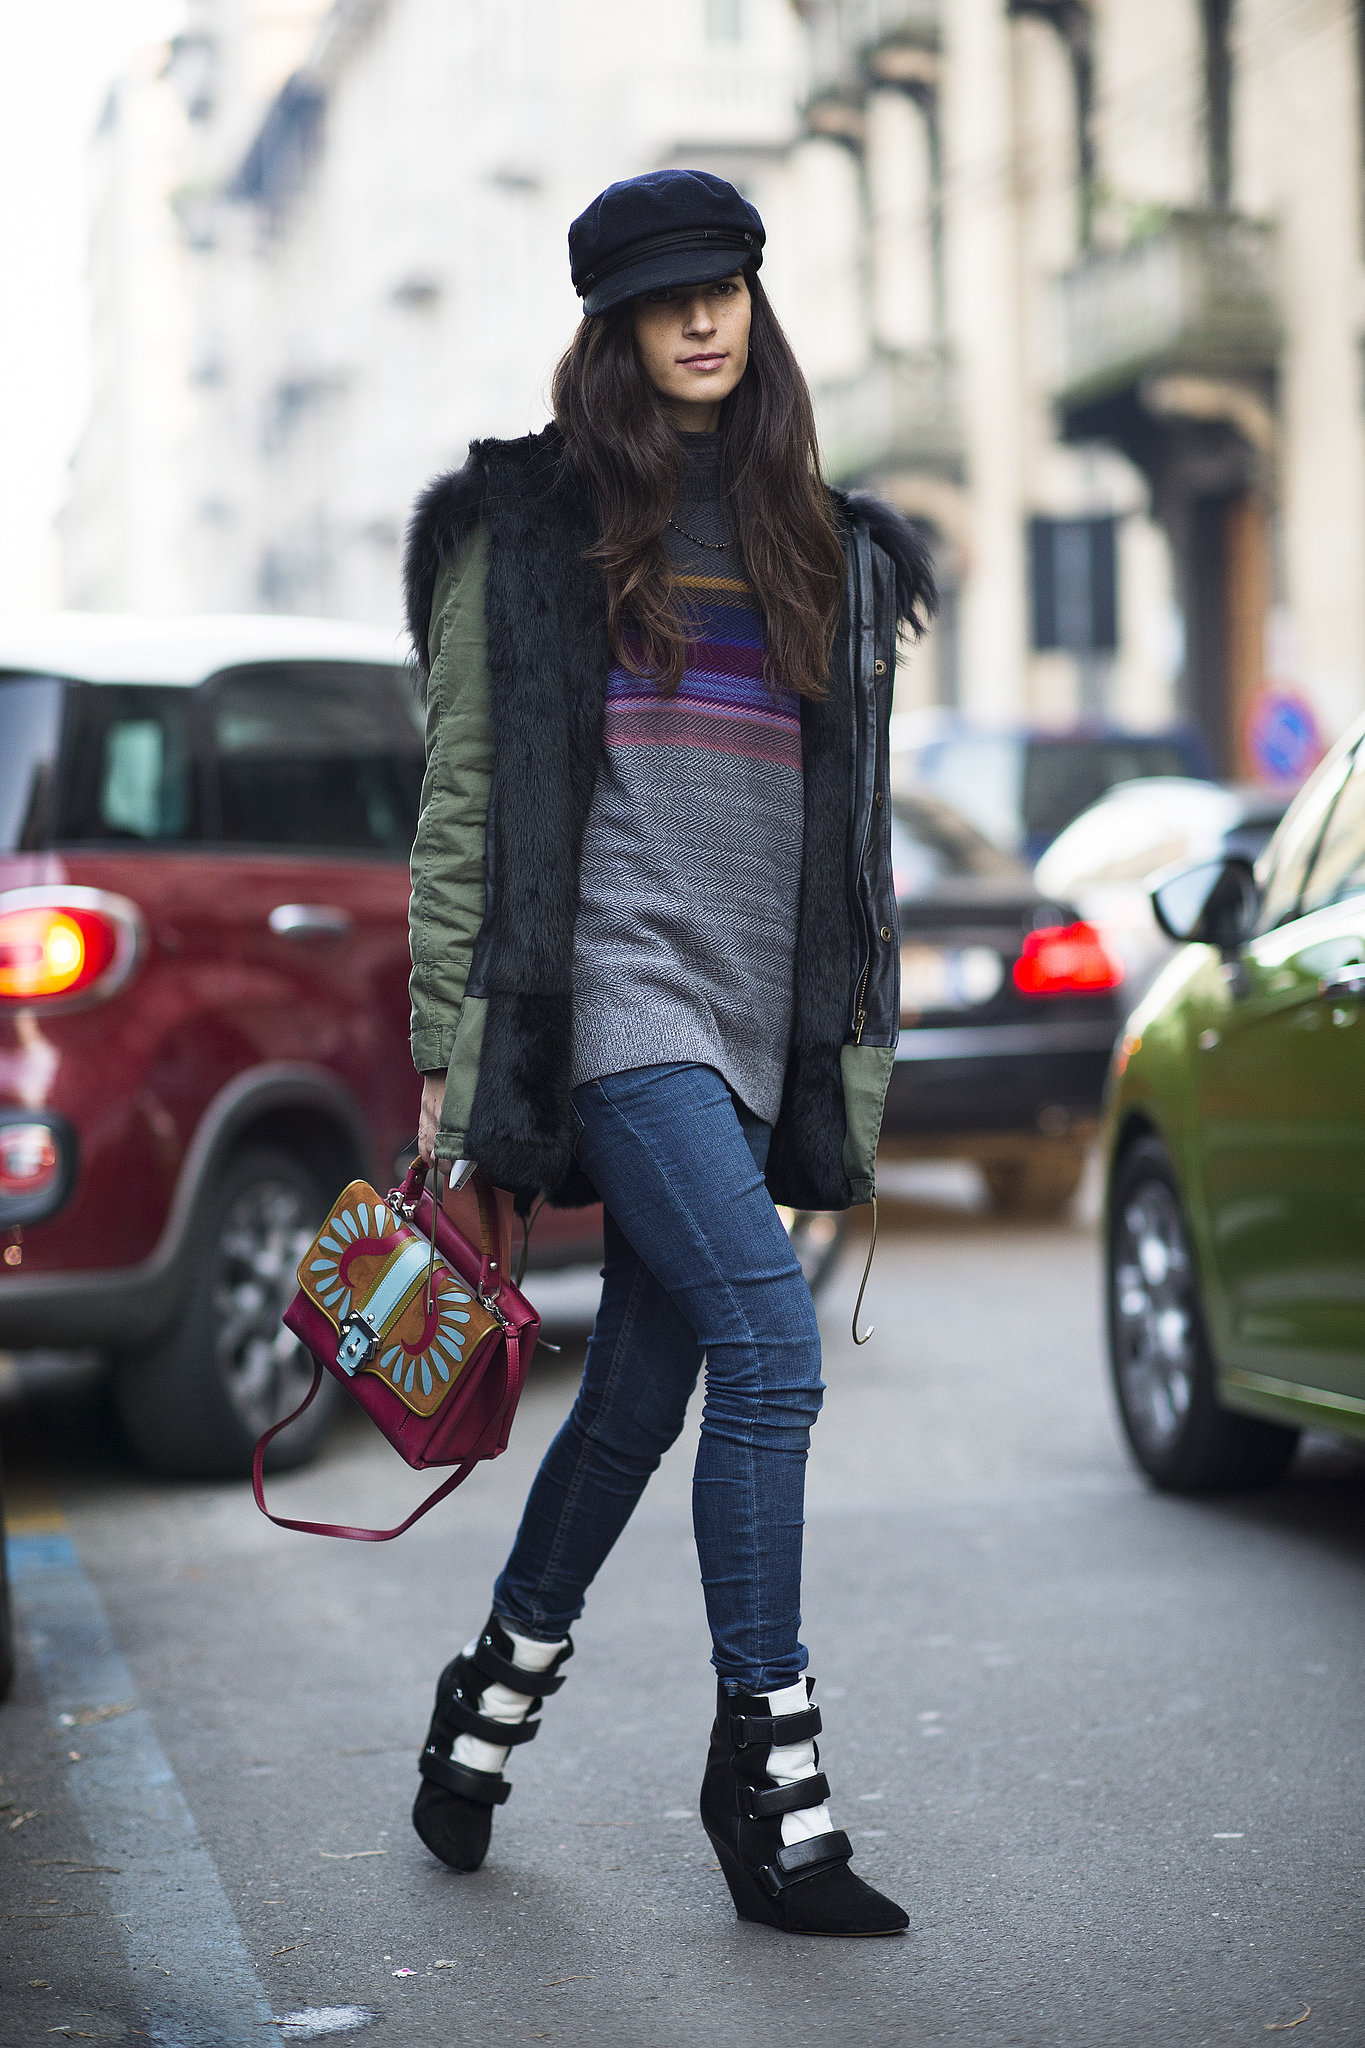 She mastered the cool-girl uniform, from the furry anorak to the wedged Isabel Marant boots. Source: Le 21ème | Adam Katz Sinding